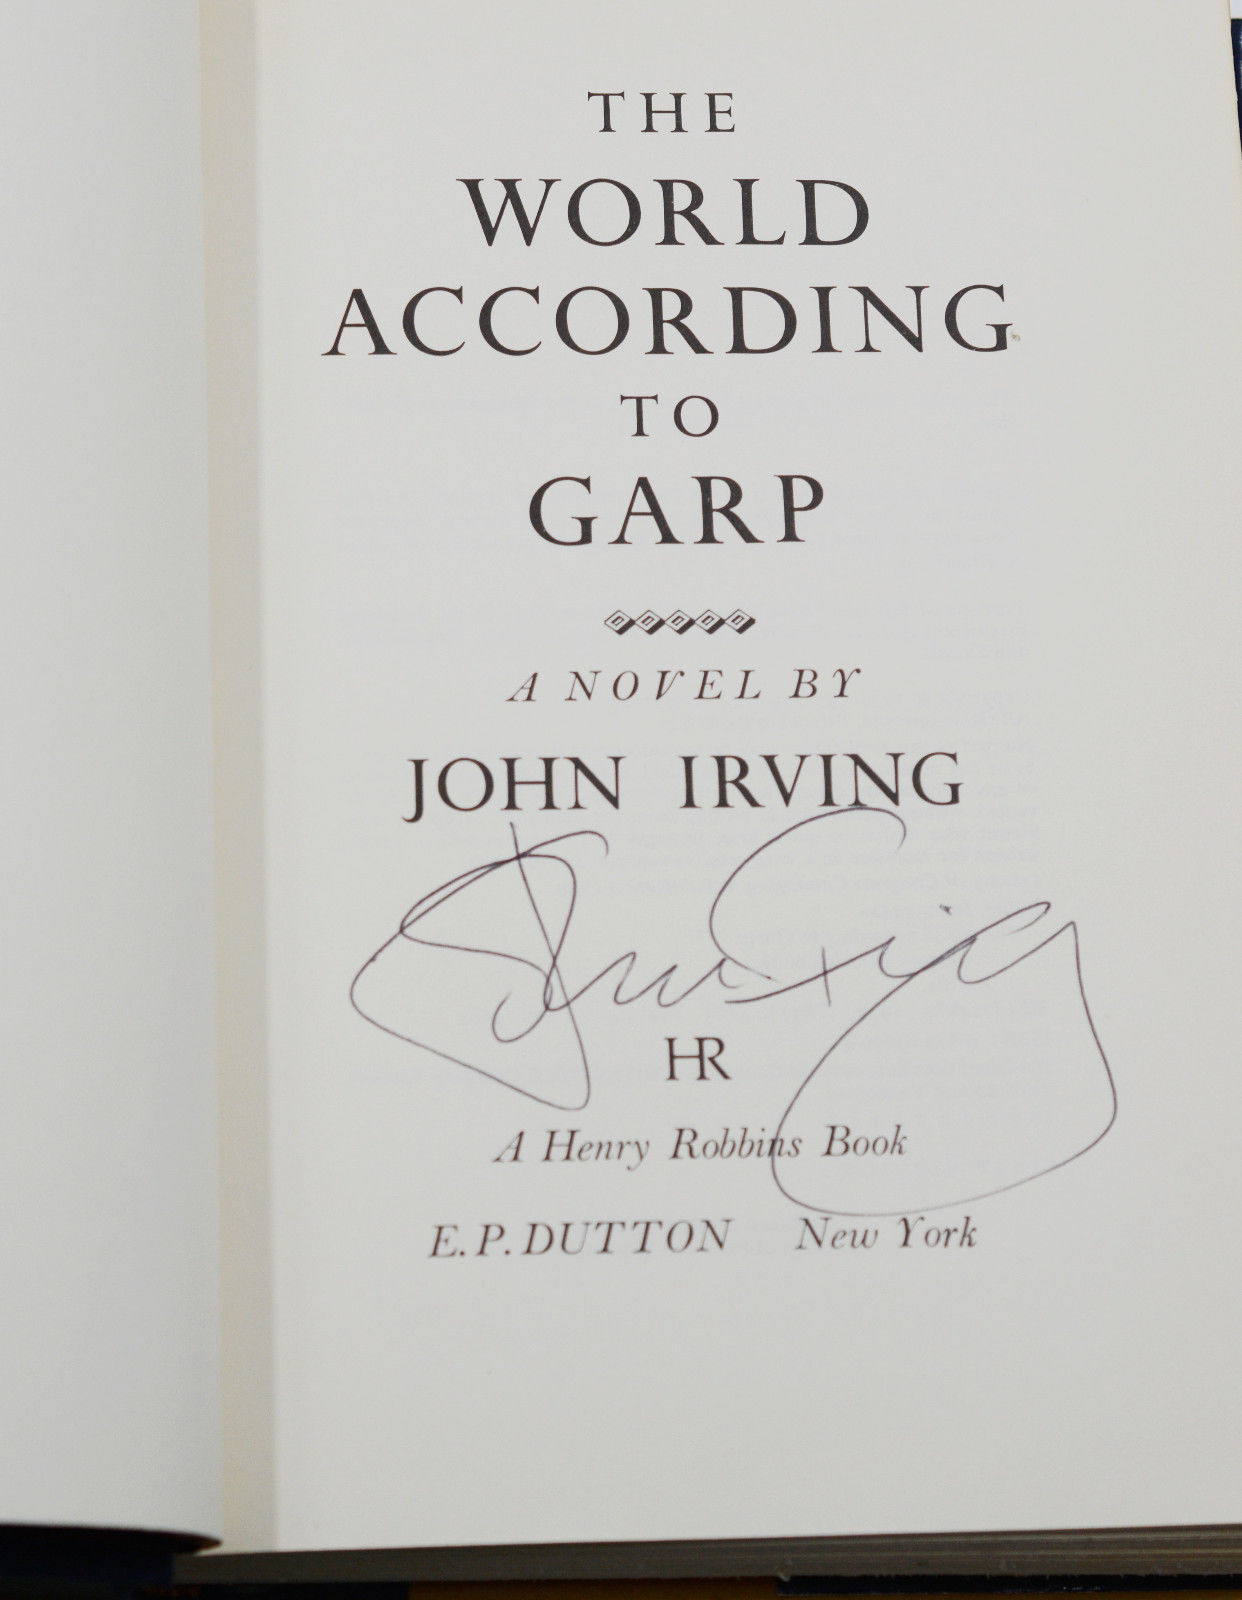 The World According to Garp by John Irving on Burnside Rare Books